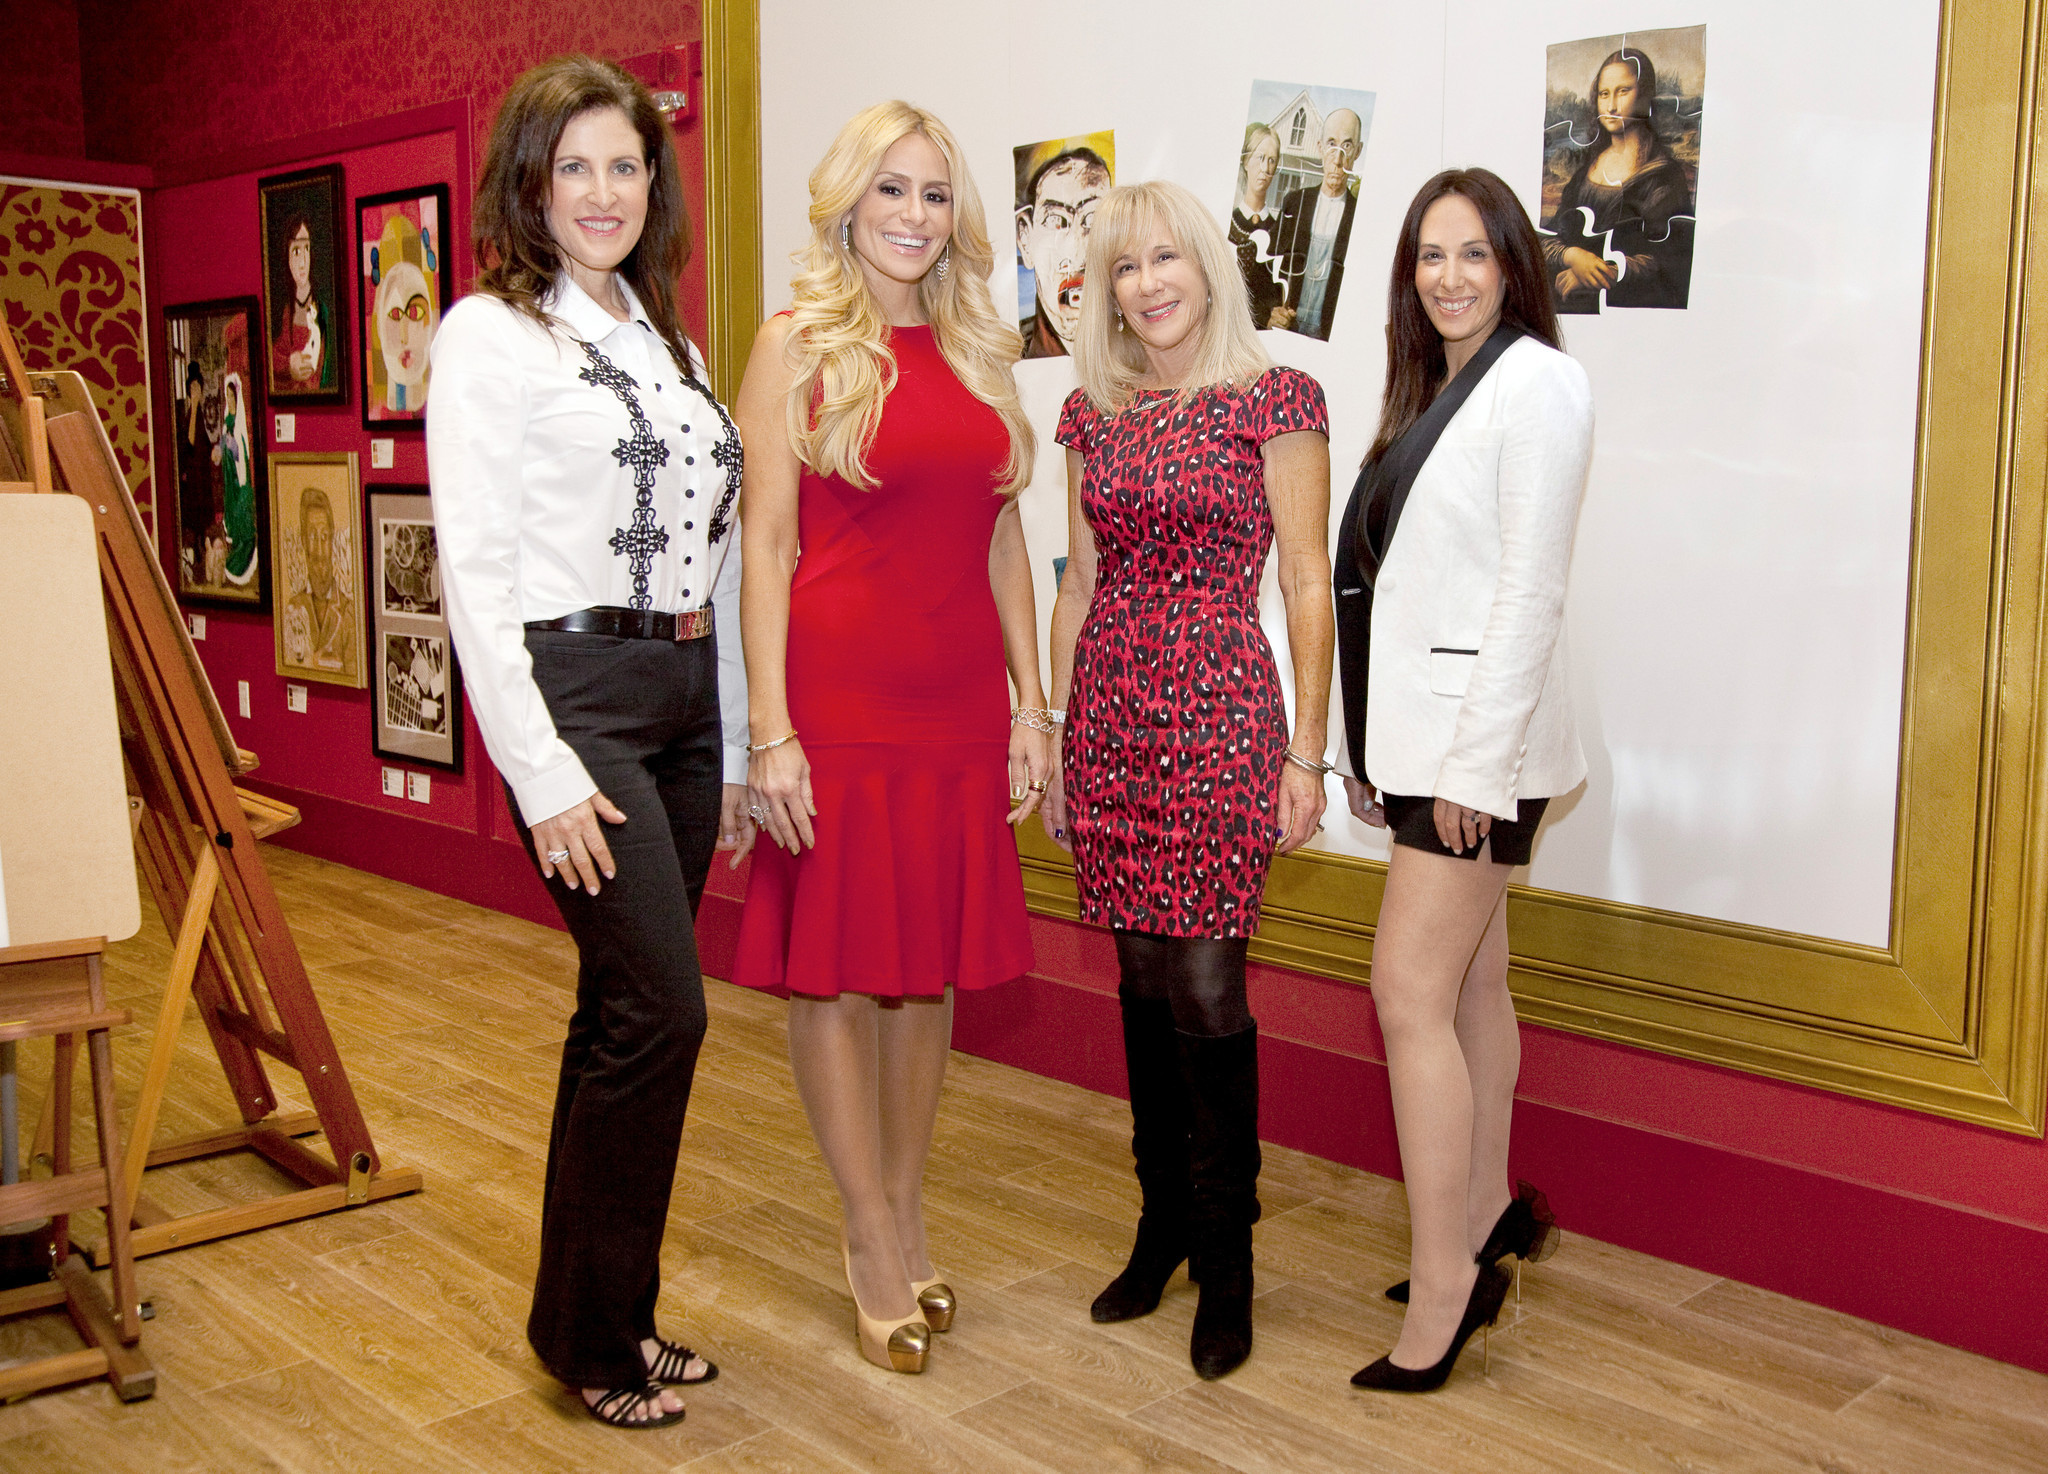 Society Scene photos - Martine Zinn, left, Maya Ezratti, Mindy Shrago and Jodi Epstein support Young At Art Museum